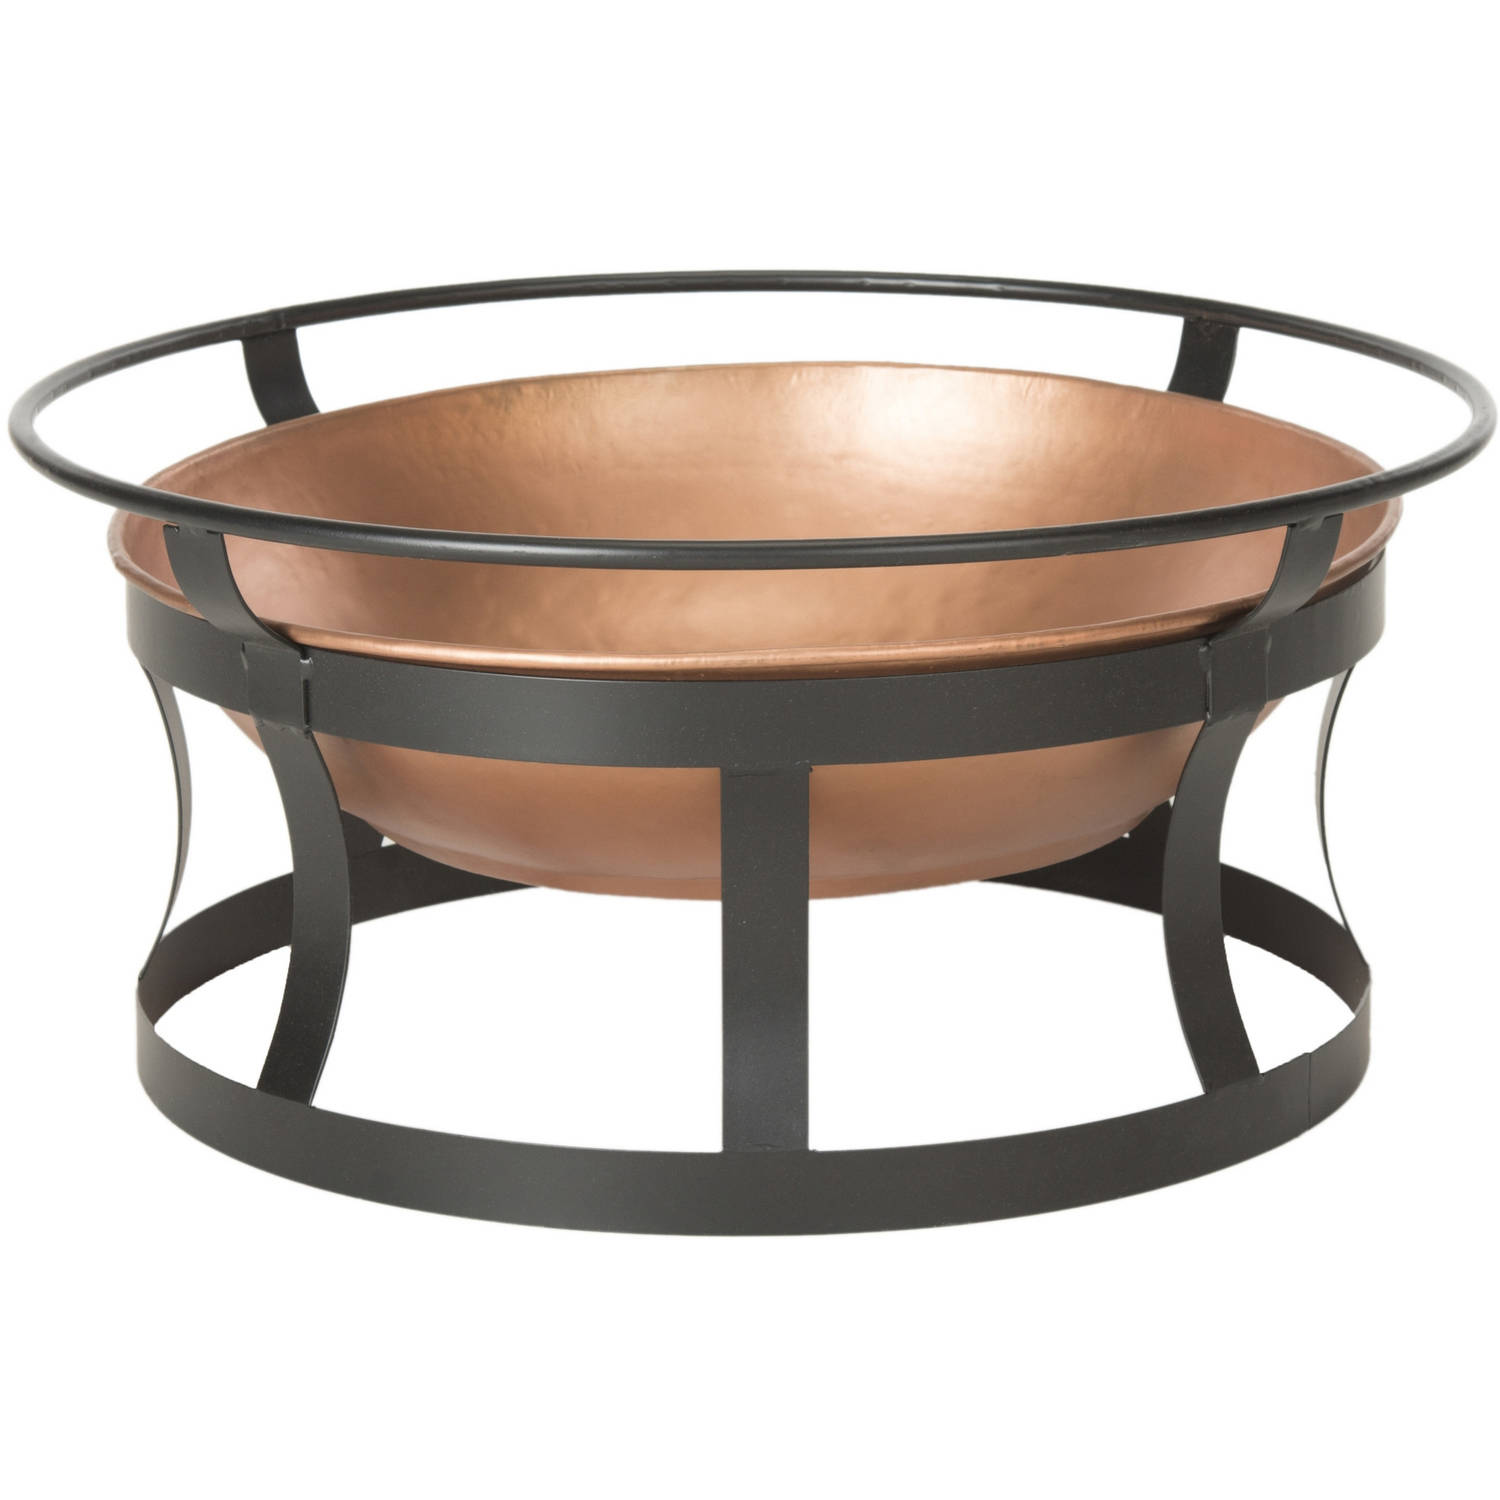 """Safavieh Bonaire 28"""" Diameter Outdoor Firepit with Grate and Fire Poker, Copper Black by Safavieh"""